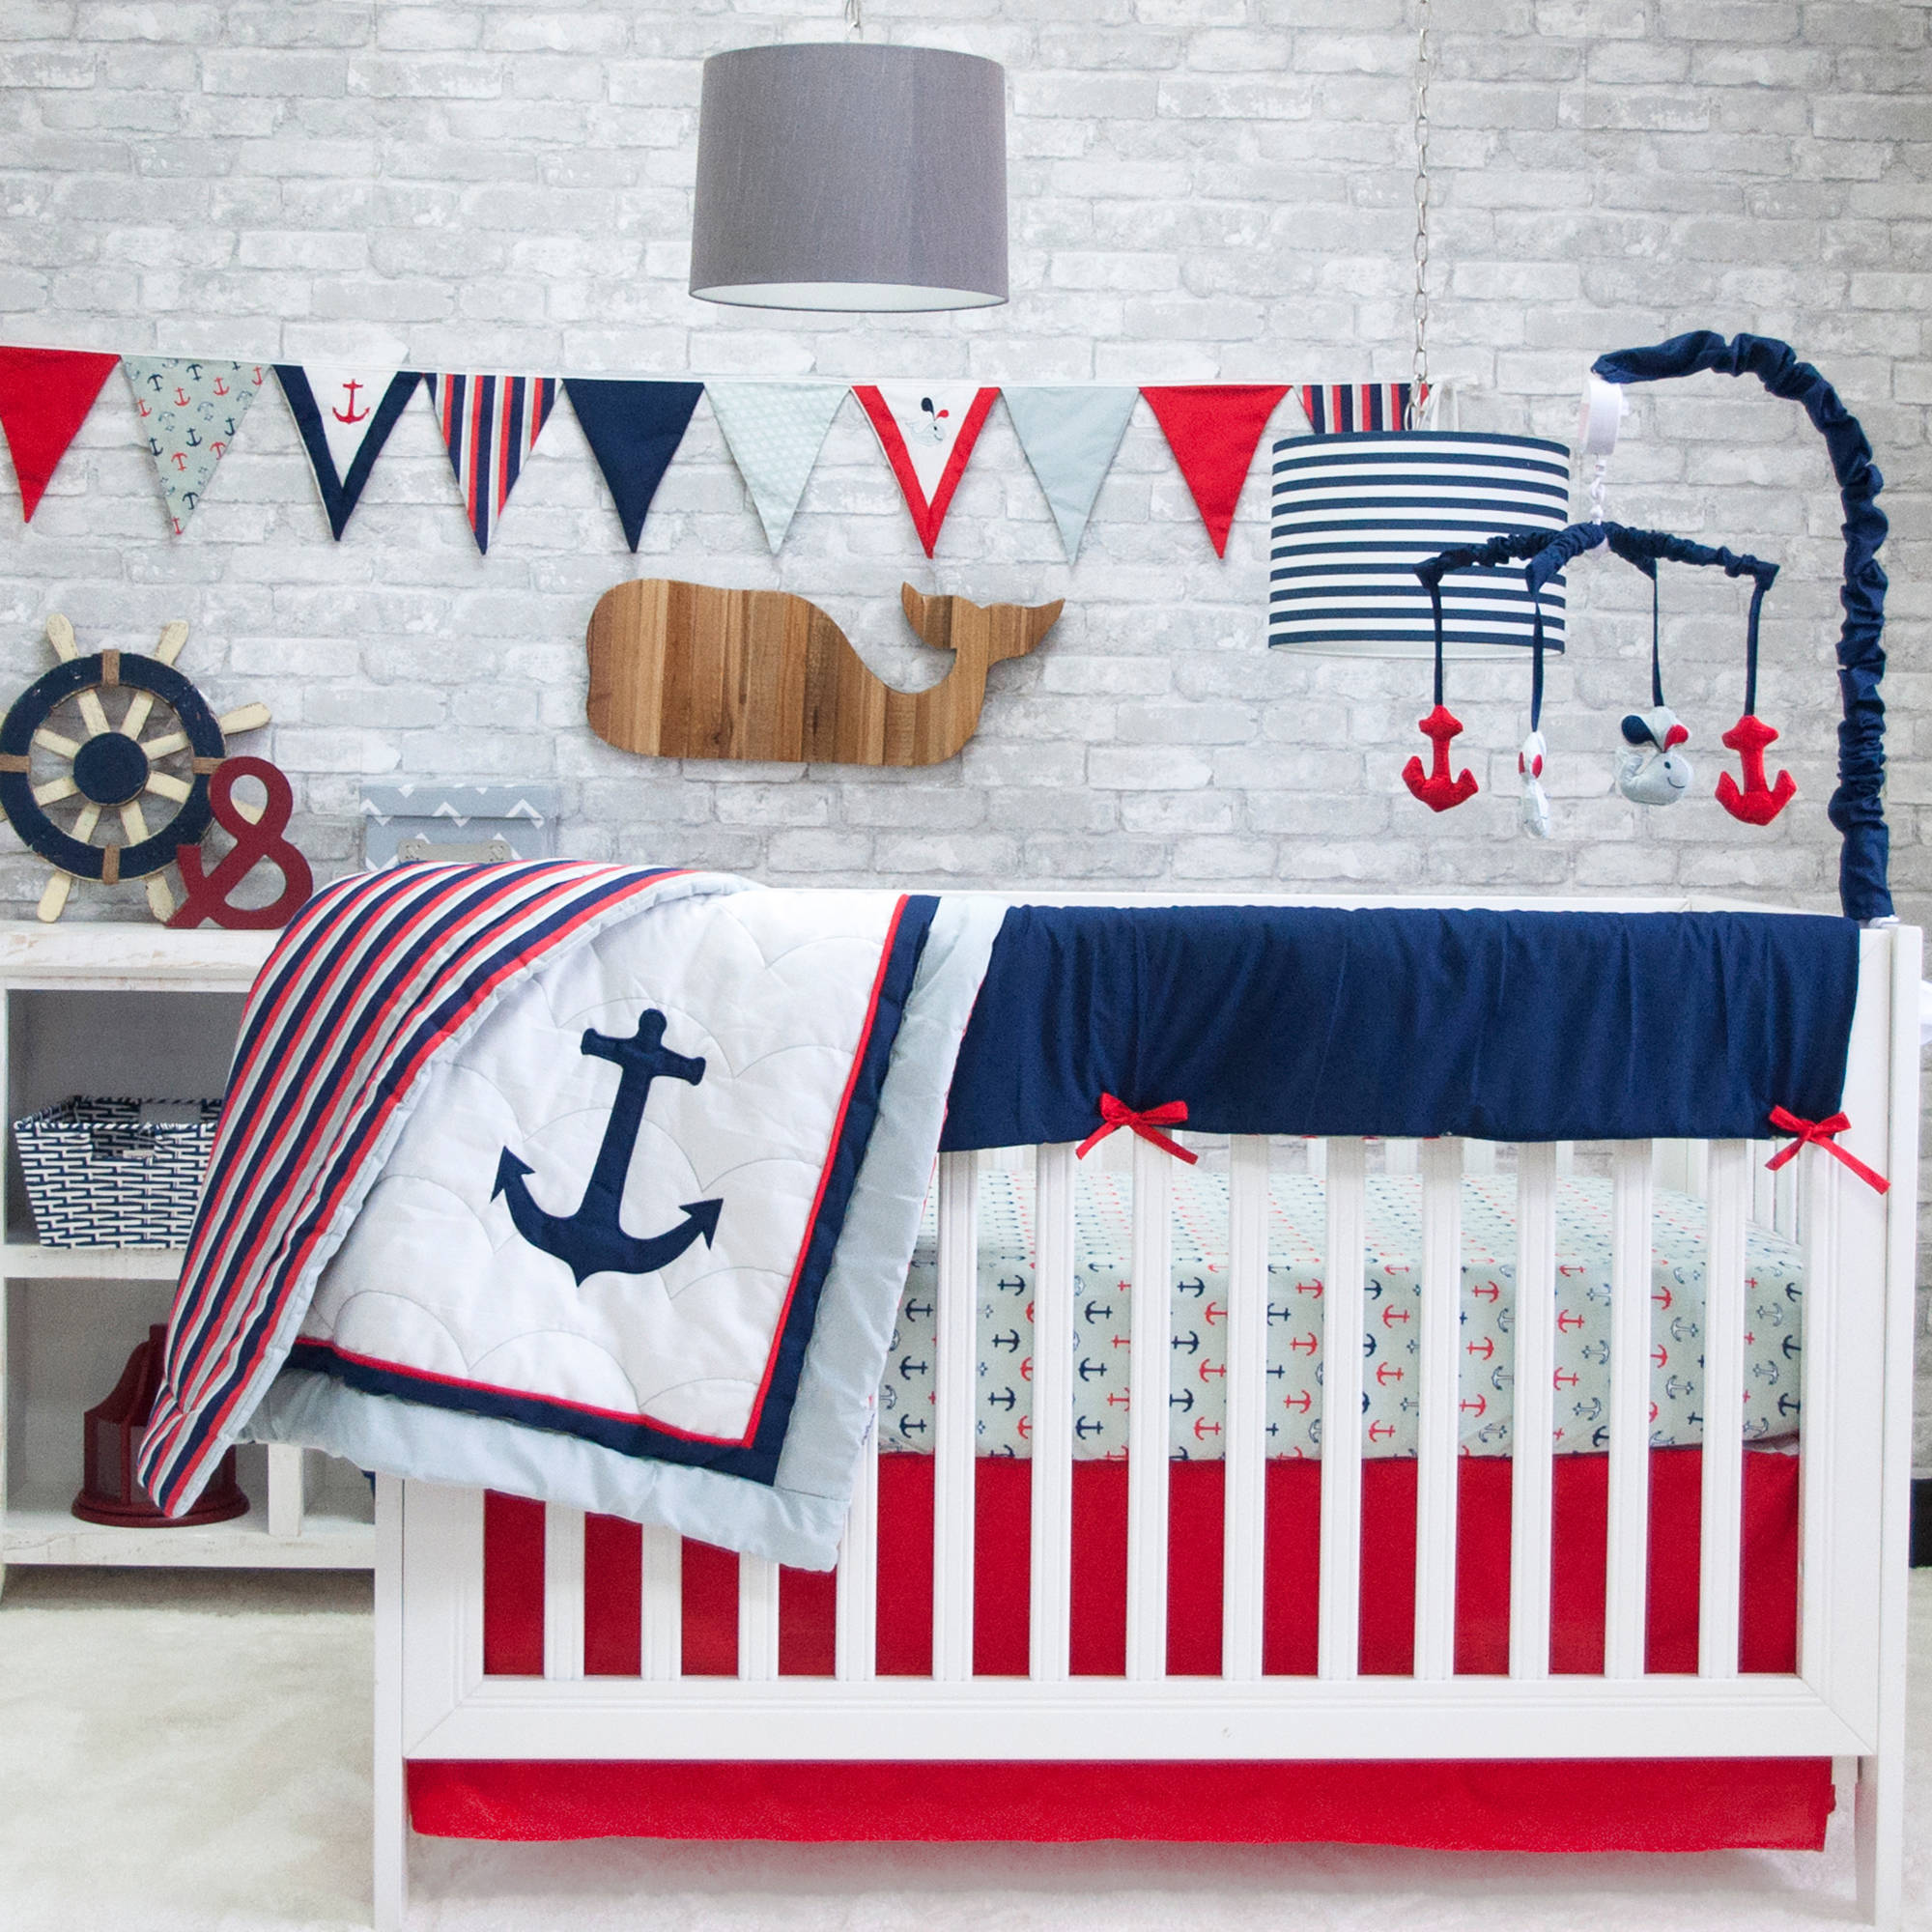 Full Crib Bedding Sets Details About Pam Grace Anchors Away 6 Piece Crib Bedding Set